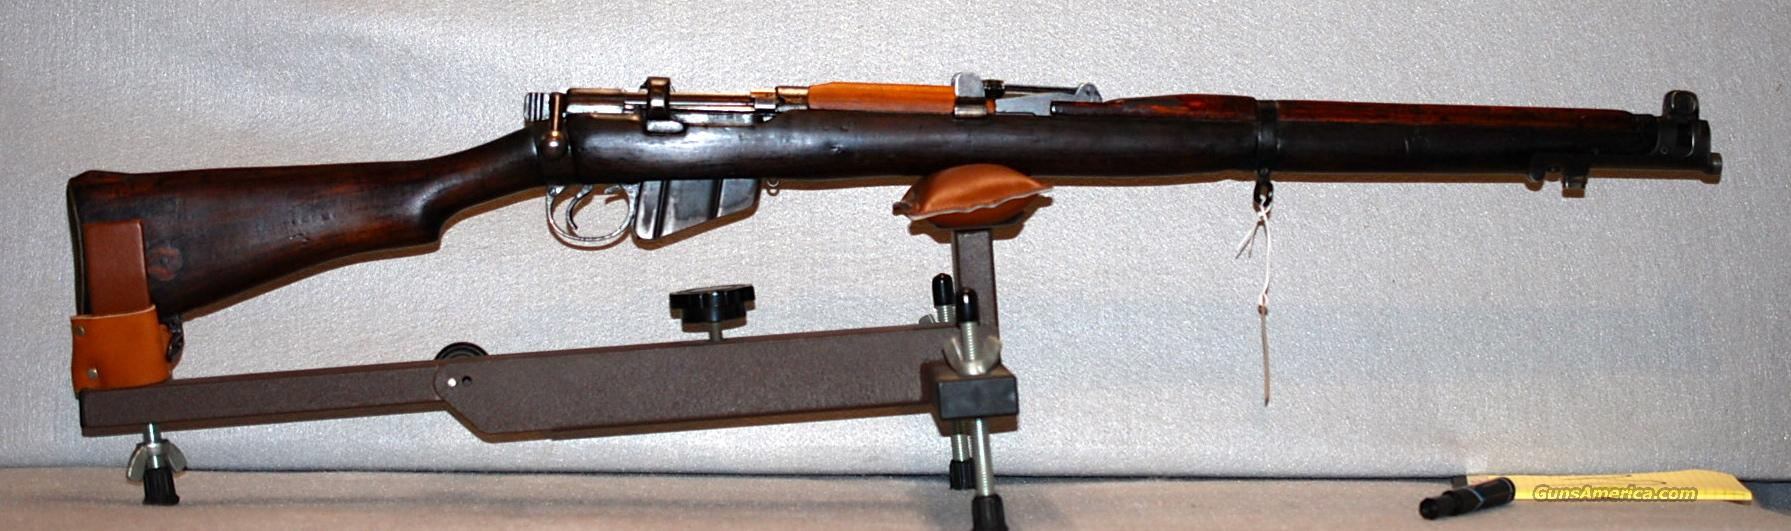 British Enfield MkIII, 1910 production  Guns > Rifles > Enfield Rifle